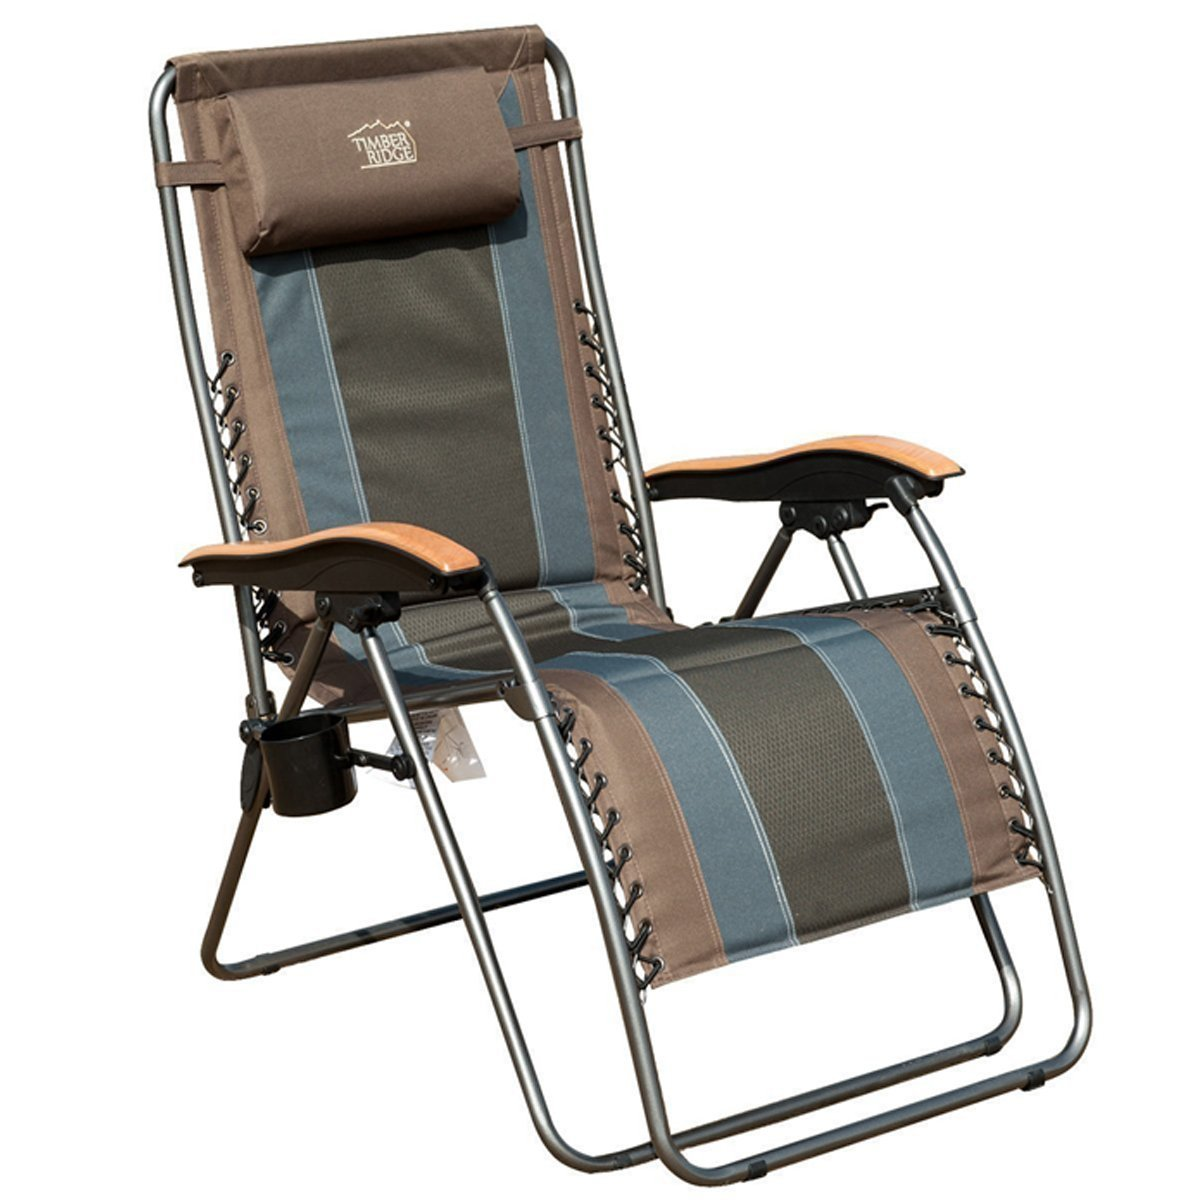 Timber Ridge Zero Gravity Patio Lounge Chair Oversize XL Padded Adjustable Recliner